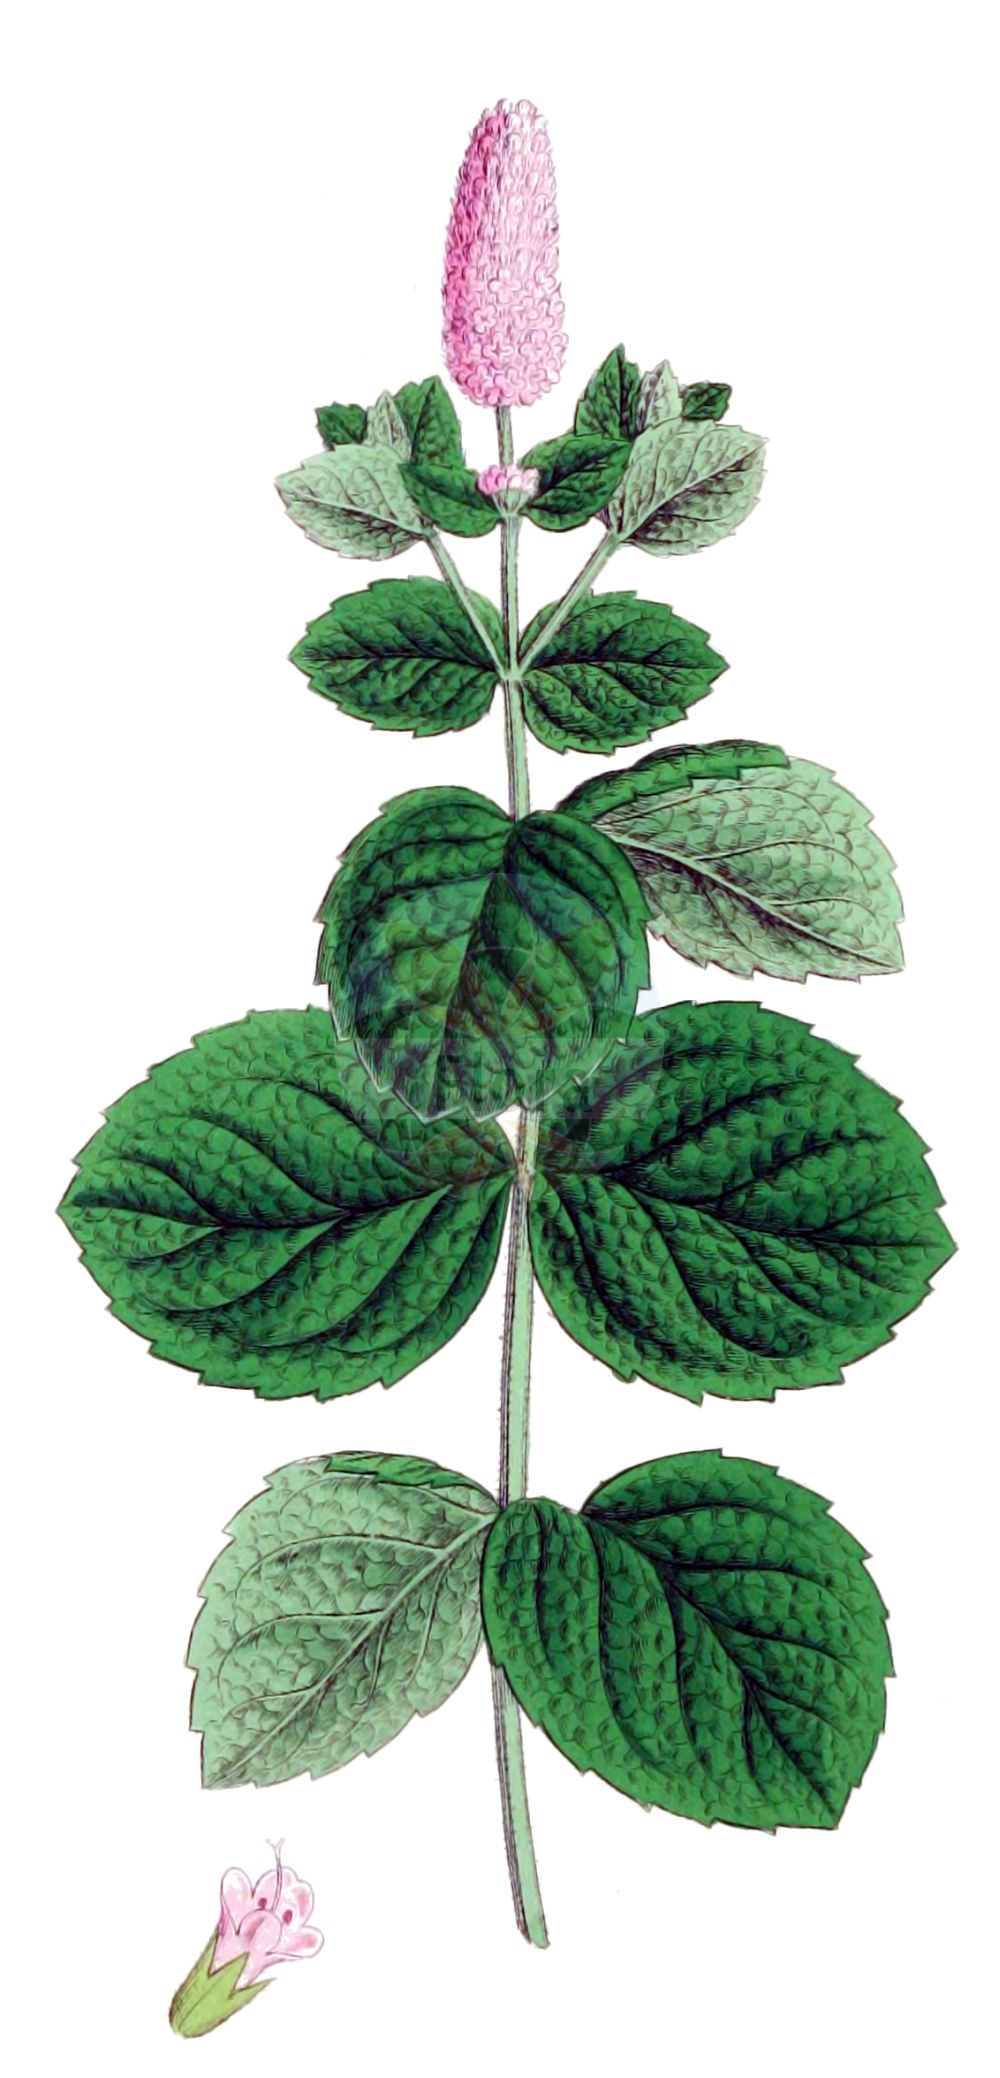 Historische Abbildung von Mentha x villosa (Zottige Minze - Bowles Mint). Das Bild zeigt Blatt, Bluete, Frucht und Same. ---- Historical Drawing of Mentha x villosa (Zottige Minze - Bowles Mint).The image is showing leaf, flower, fruit and seed.(Mentha x villosa,Zottige Minze,Bowles Mint,Mentha villosa,Mentha x villosa,Zottige Minze,Bowles Mint,Mentha,Minze,Mint,Lamiaceae,Lippenbluetengewaechse,Lippenbluetler,Nettle family,Blatt,Bluete,Frucht,Same,leaf,flower,fruit,seed,Sowerby (1790-1813))